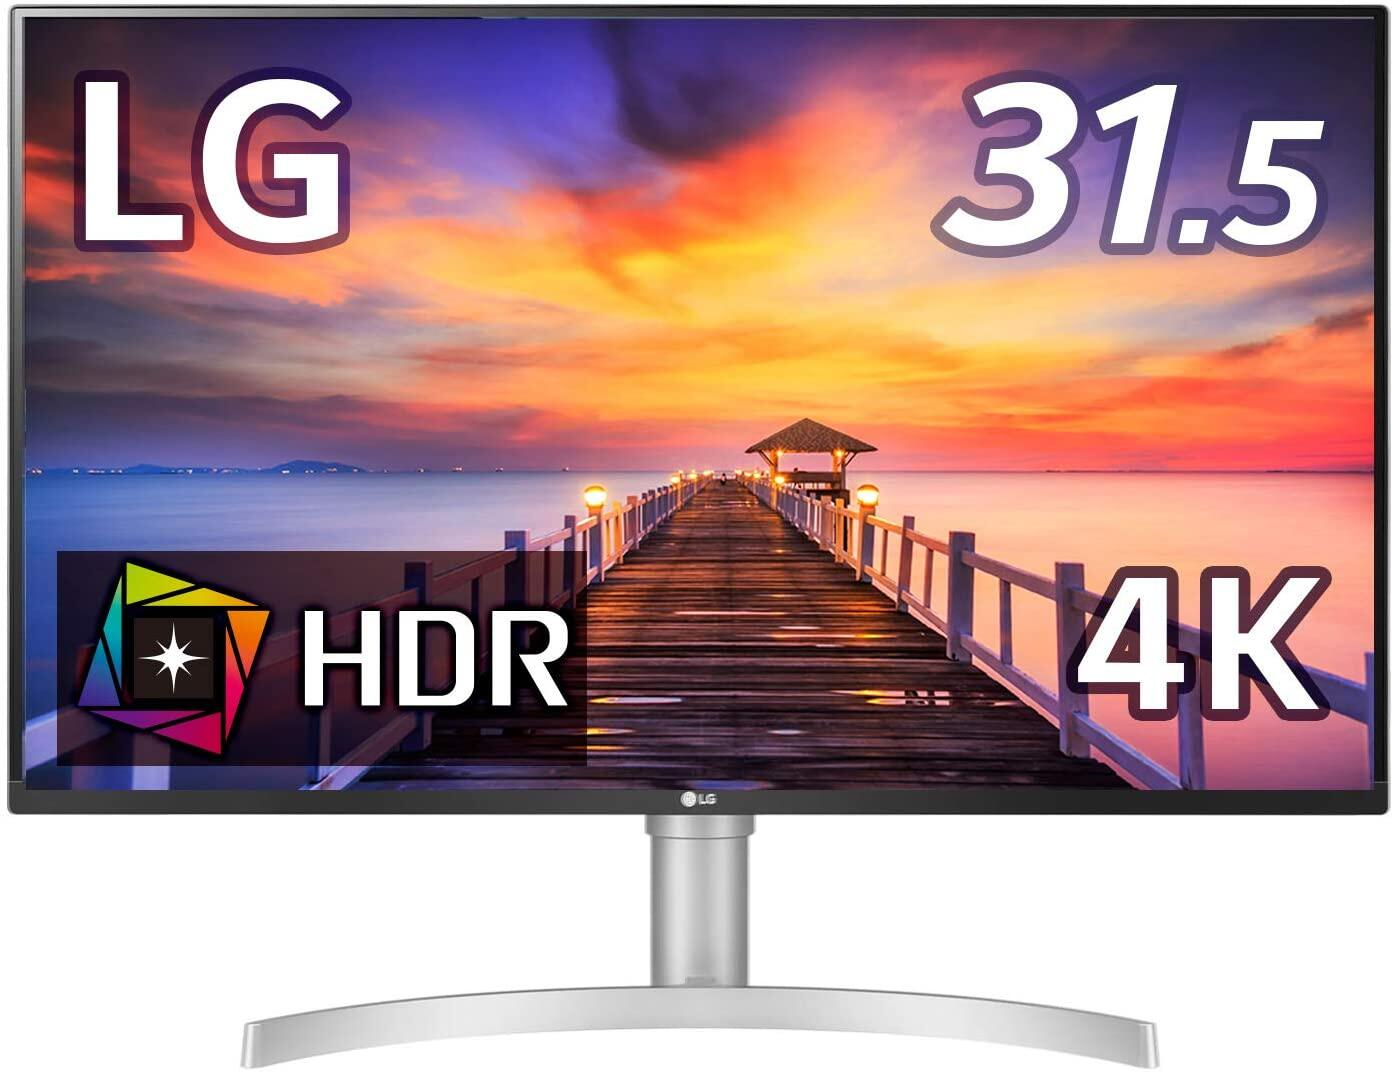 Lg 32un500-W 32 Inch Uhd (3840 X 2160) Va Display With Amd Freesync, Dci-P3 90% Color Gamut, Hdr10 Compatibility, And 3-Side Virtually Borderless Design, Silver/white.